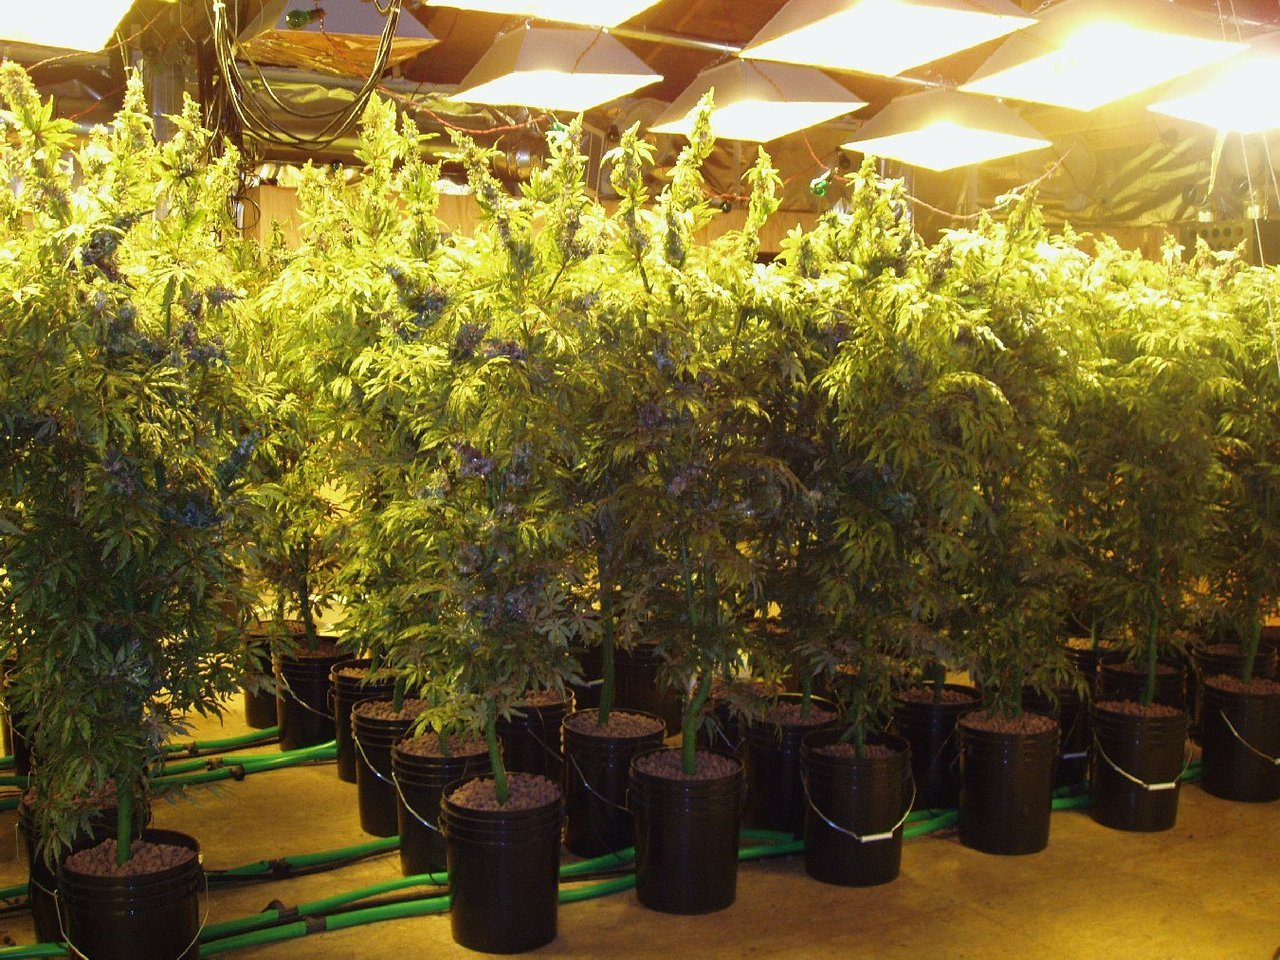 bl0winonmedicinal:  take a look at California's number one cash crop